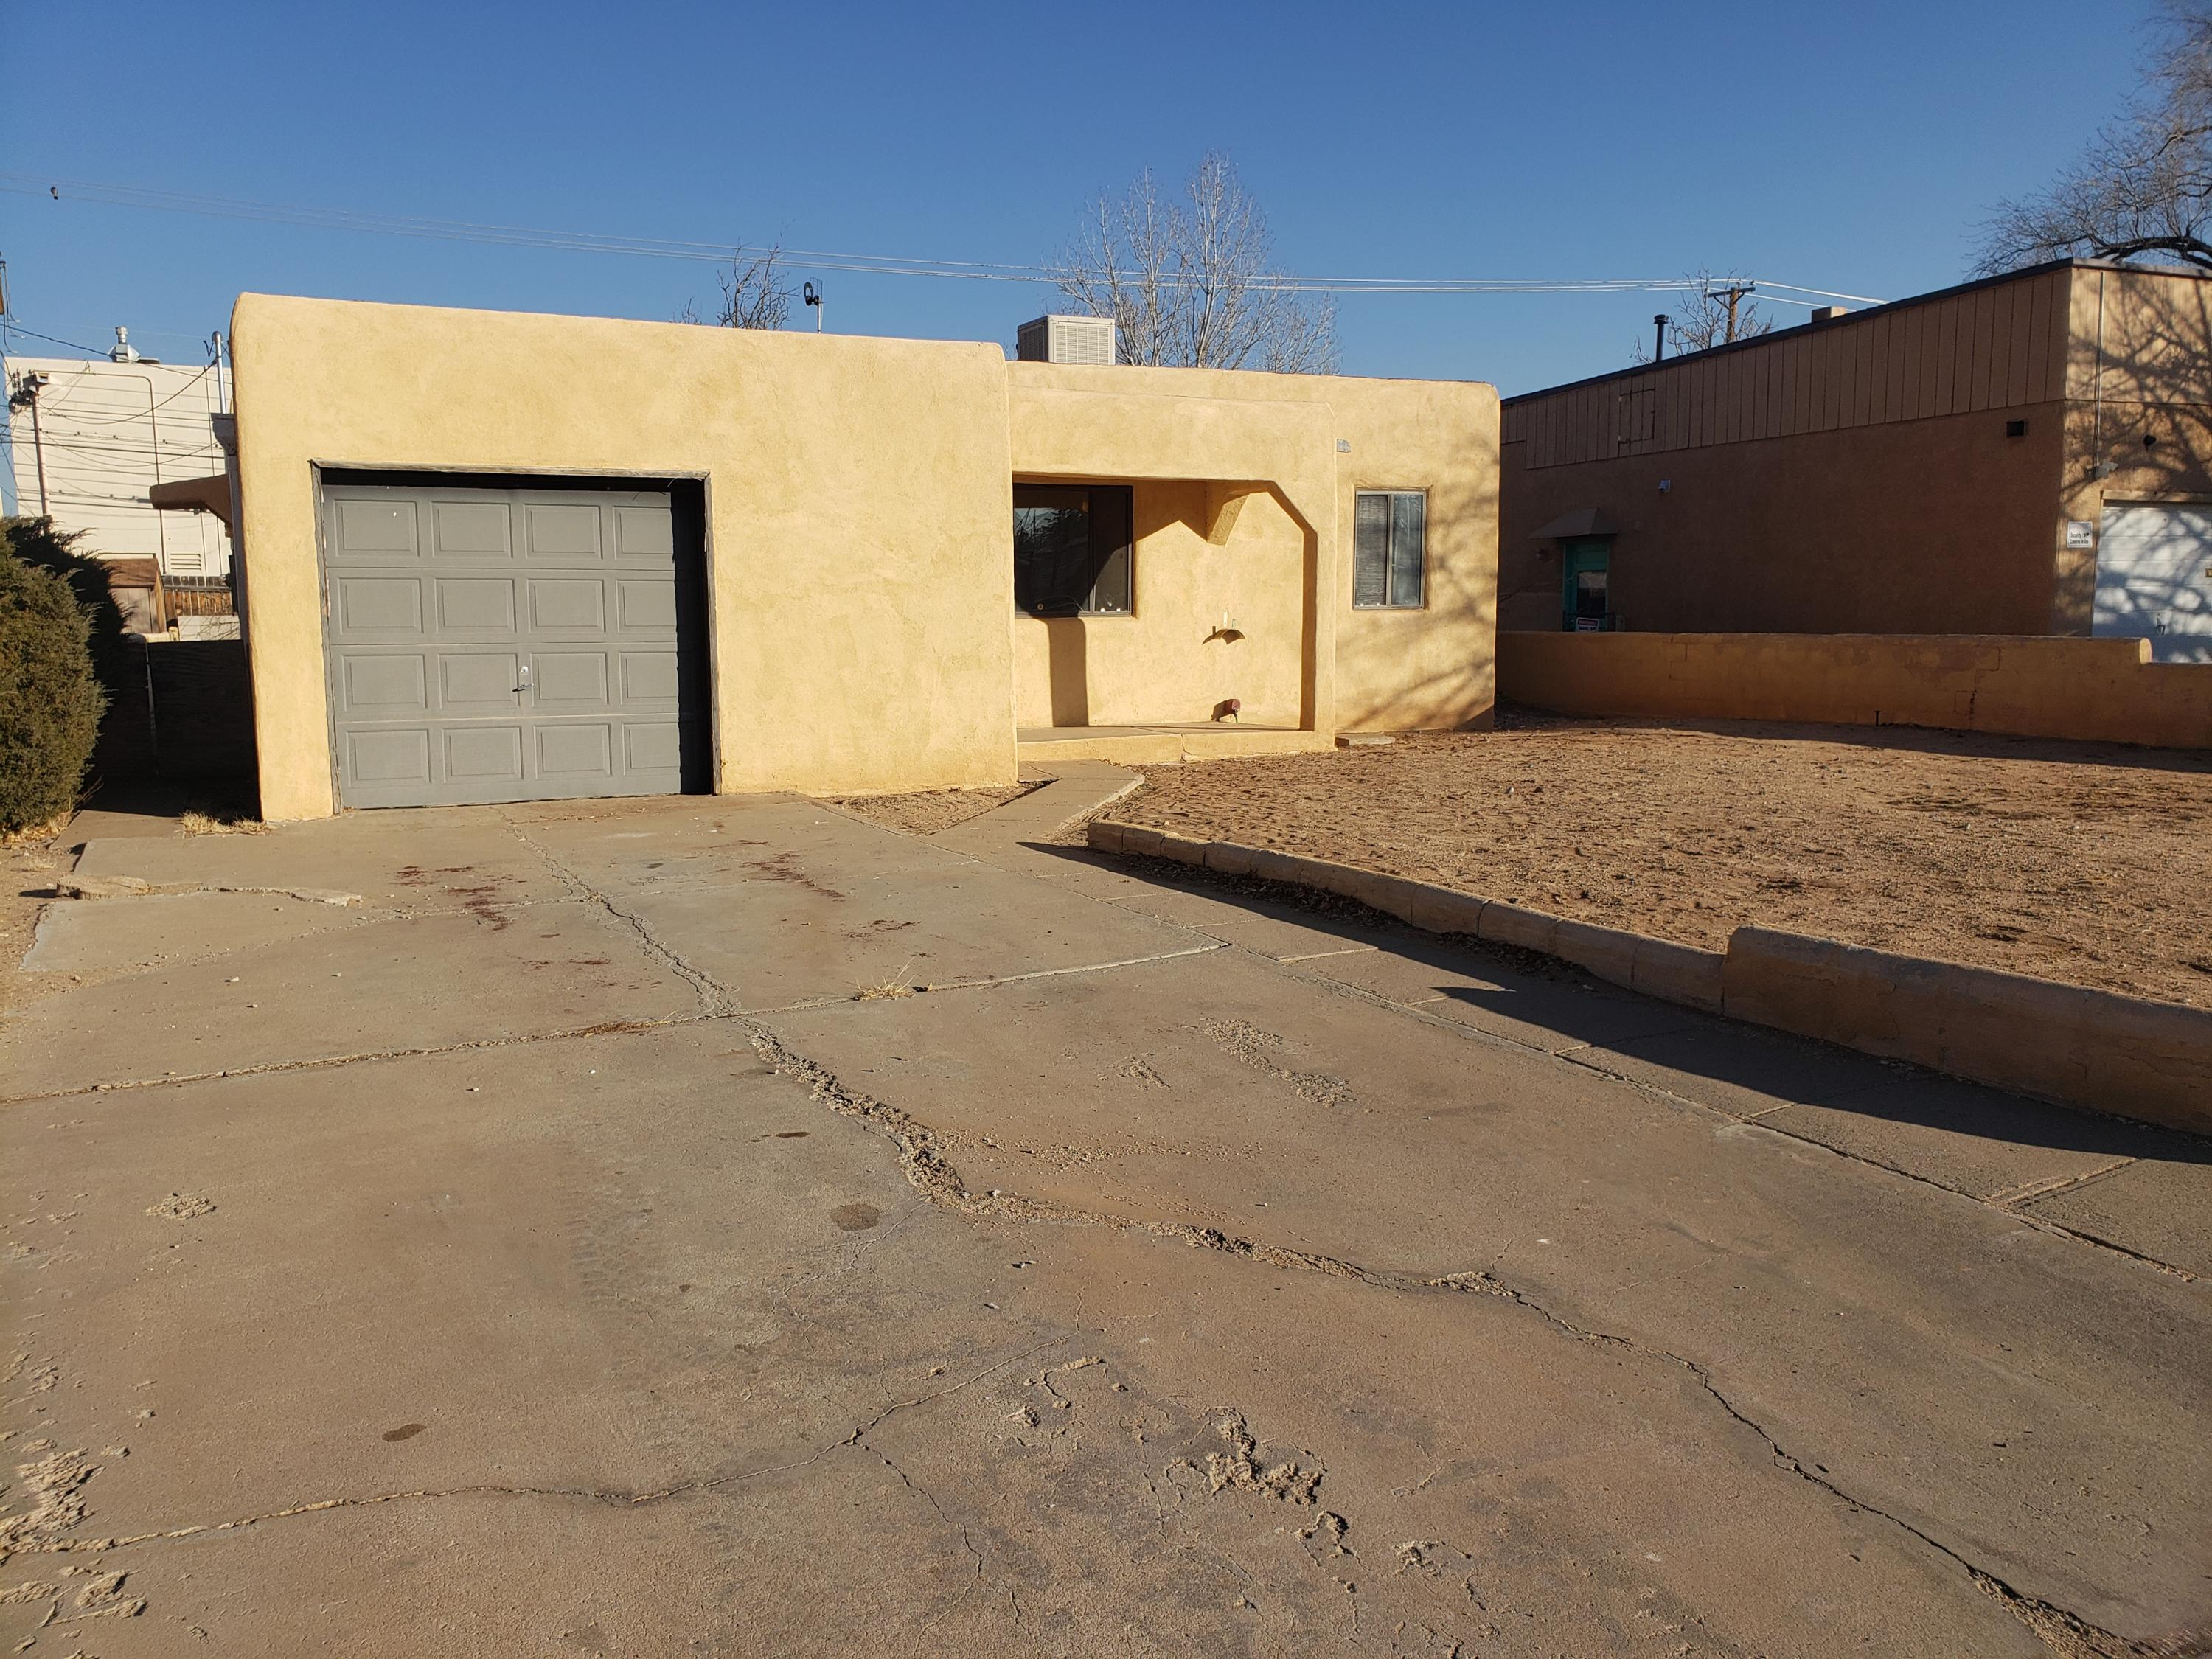 ** PRICE IMPROVEMENT! ** Conveniently located near Kirtland AFB, UNM & the VA hospital, This charming and well-maintained 2 bedroom home is move in ready! With some upgrades, could be a show stopper for its new owner to call home or an investor to rent out for extra income. Newer furnace and thermal pane windows, large living area, large backyard and across the street from elementary school. Make an offer today!